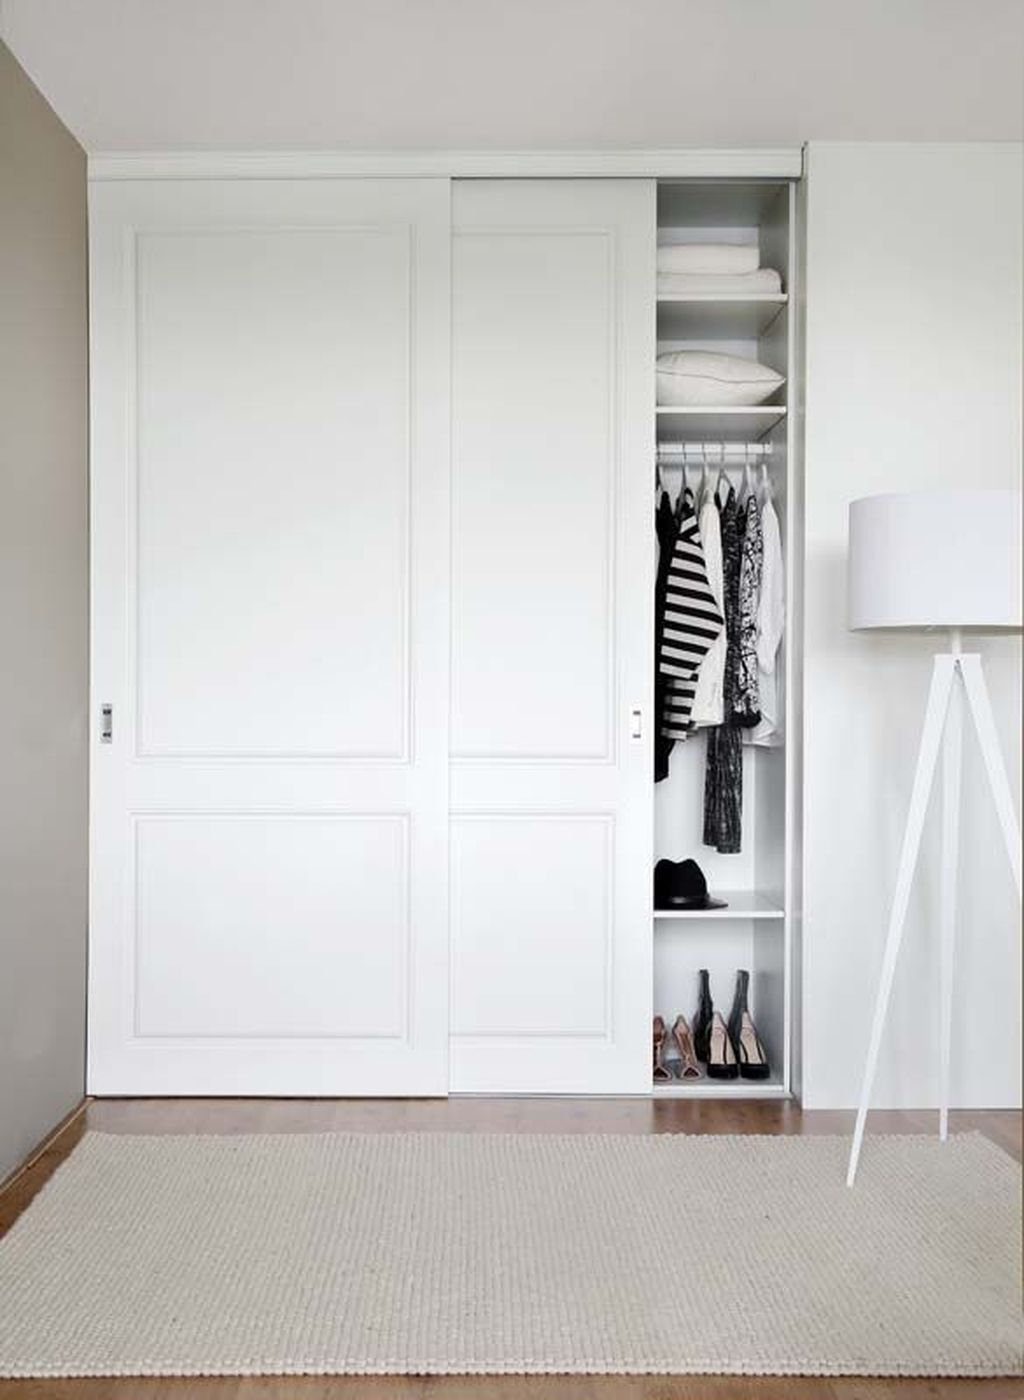 20 Amazing Sliding Door Wardrobe Design Ideas Sliding Door Wardrobe Designs Bedroom Closet Doors Bedroom Cupboards